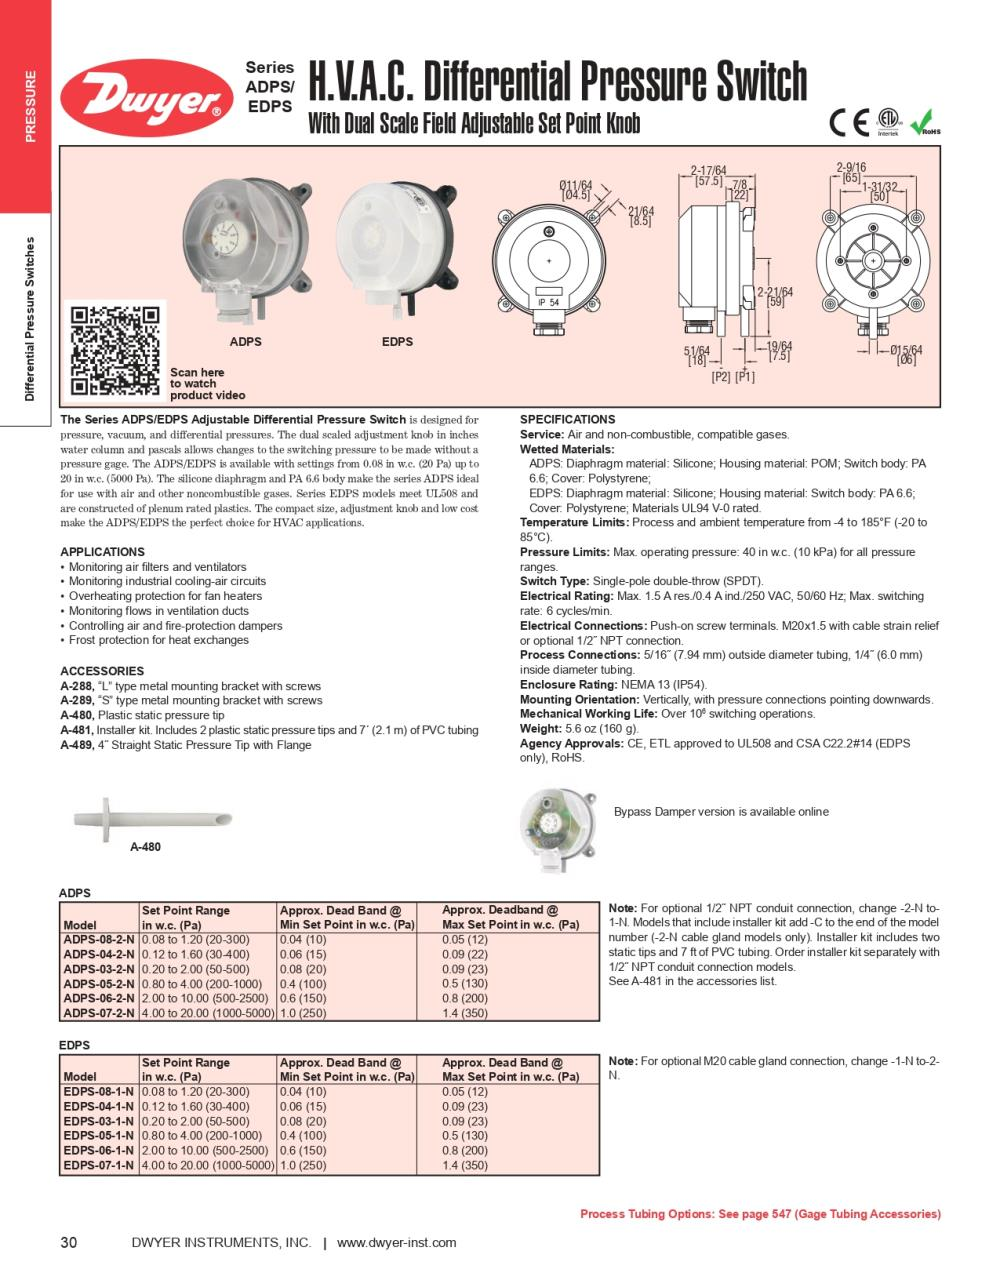 ADPS  DIFFERENTIAL PRESSURE SWITCH